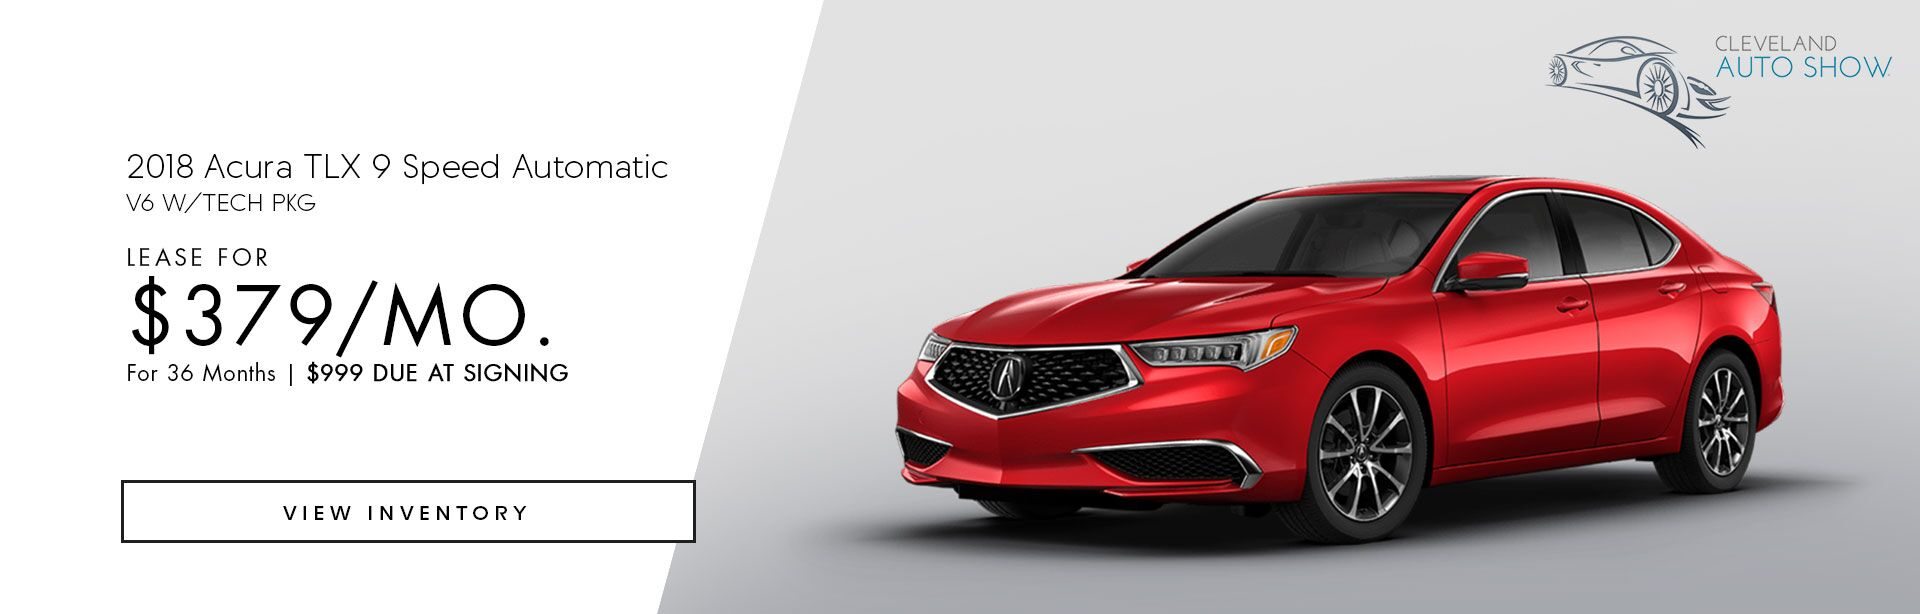 2018 Acura TLX 9 Speed